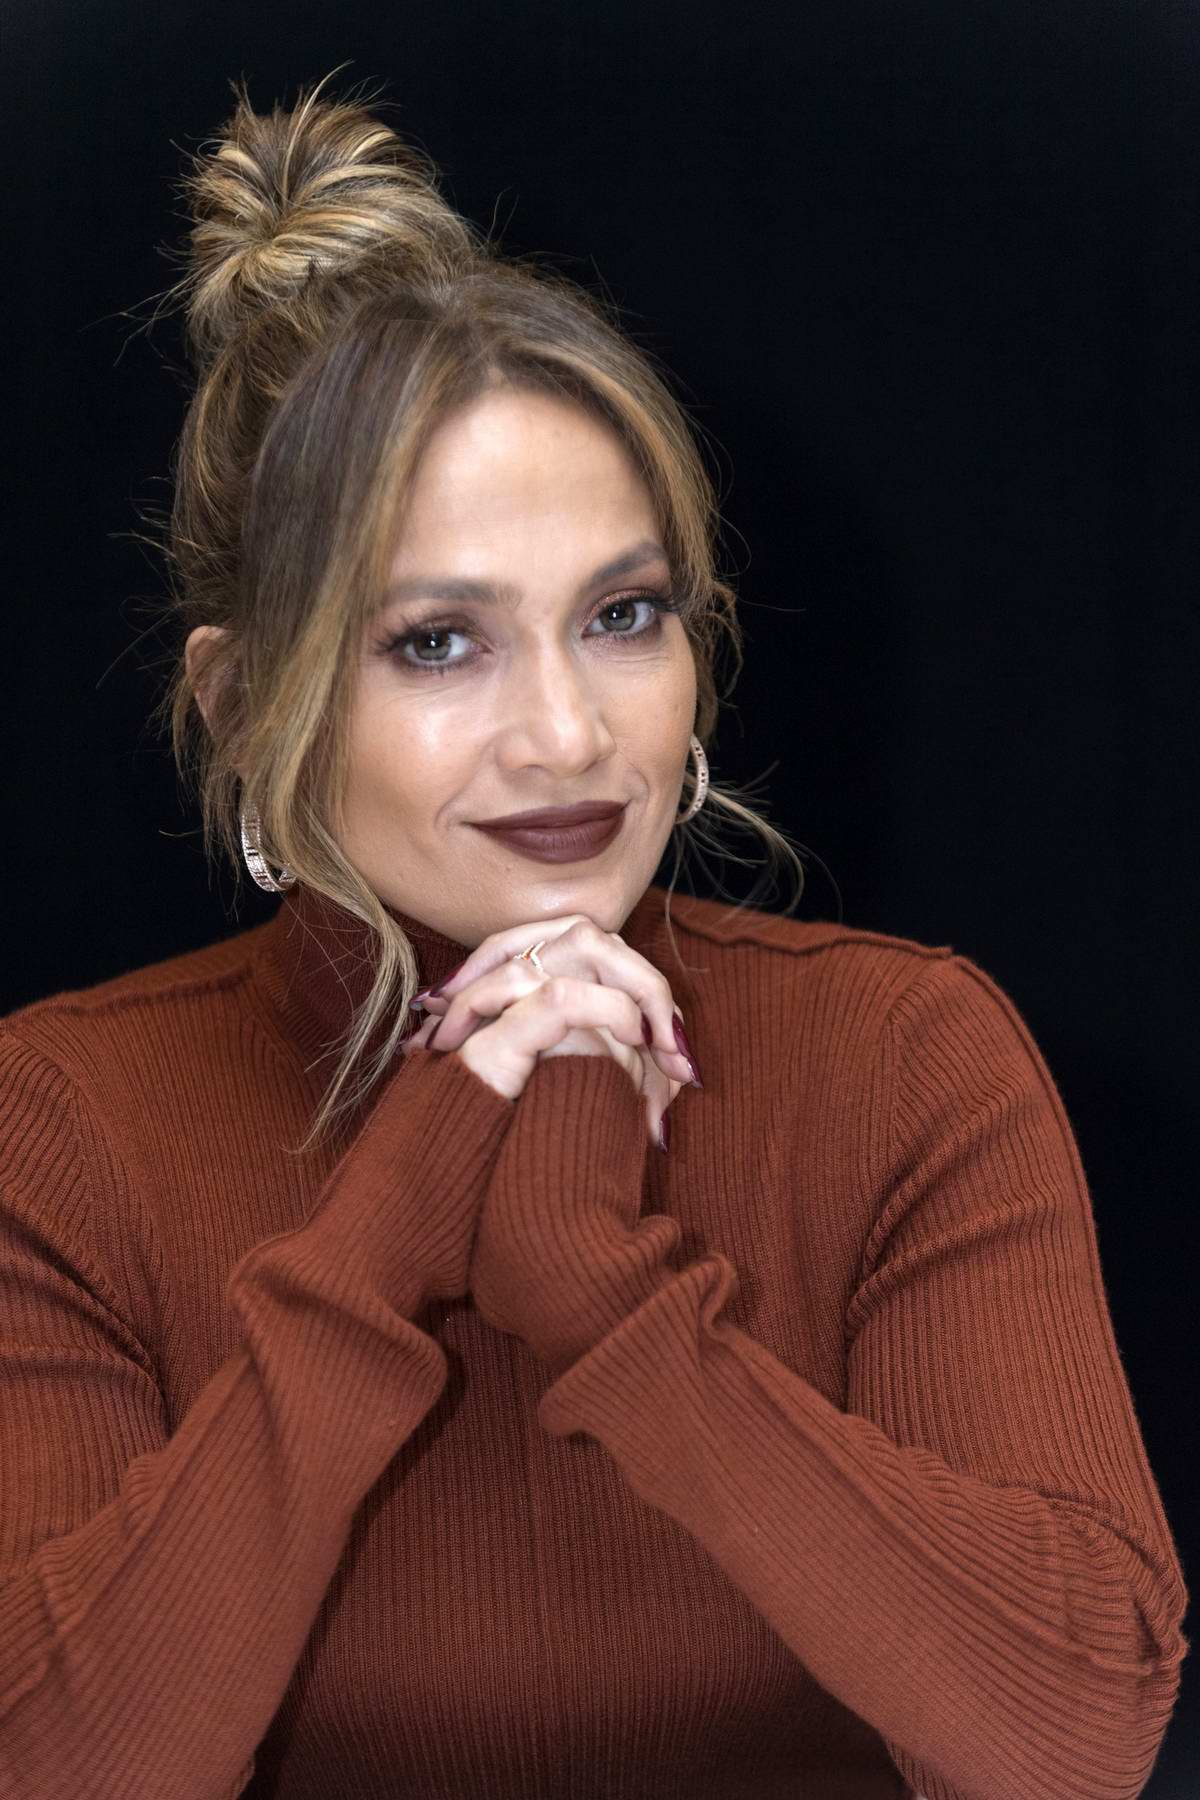 Jennifer Lopez at the 'Second Act' Press Conference Portraits at the Four Seasons Hotel in Beverly Hills, Los Angeles